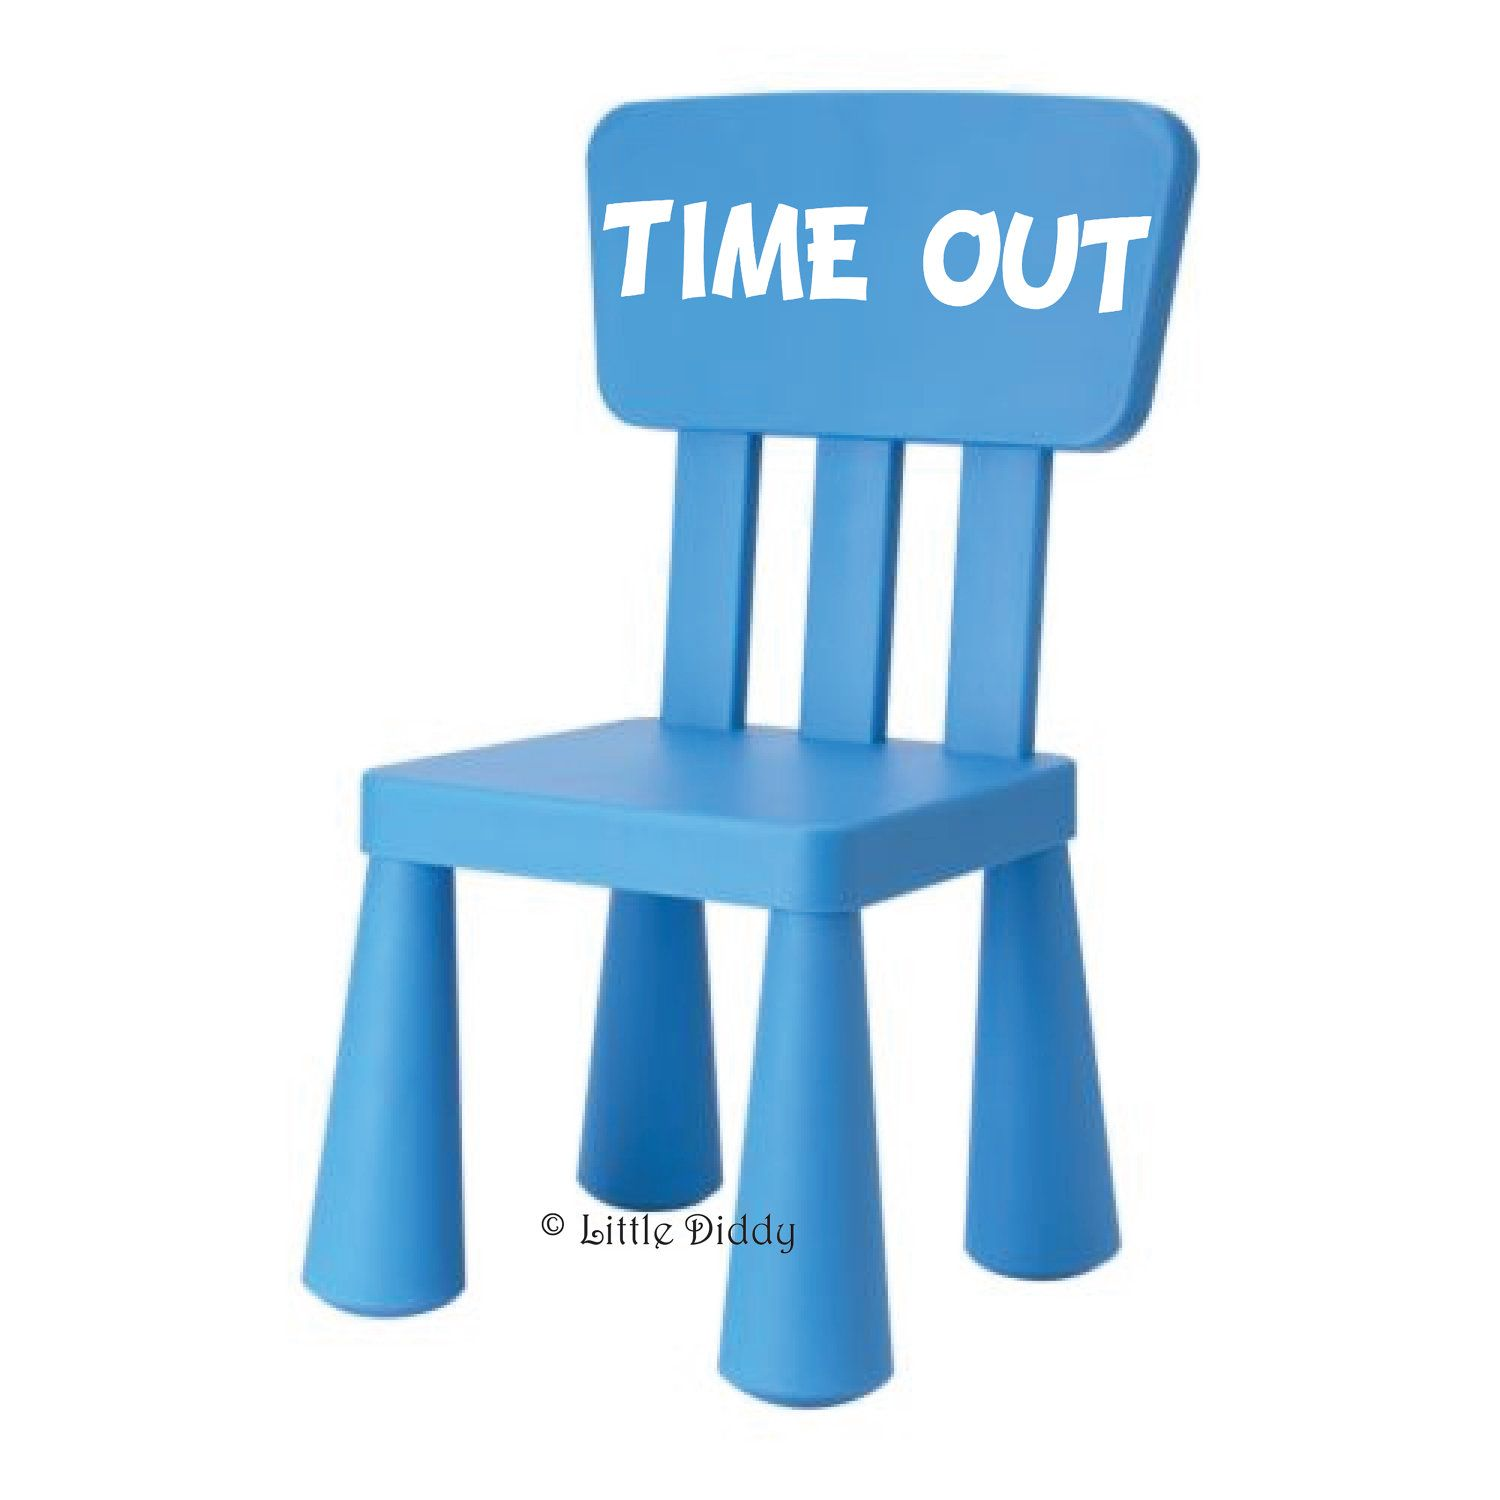 Time out chair clipart banner black and white stock TIME OUT Vinyl Decal- perfect for a time out chair...IKEA ... banner black and white stock